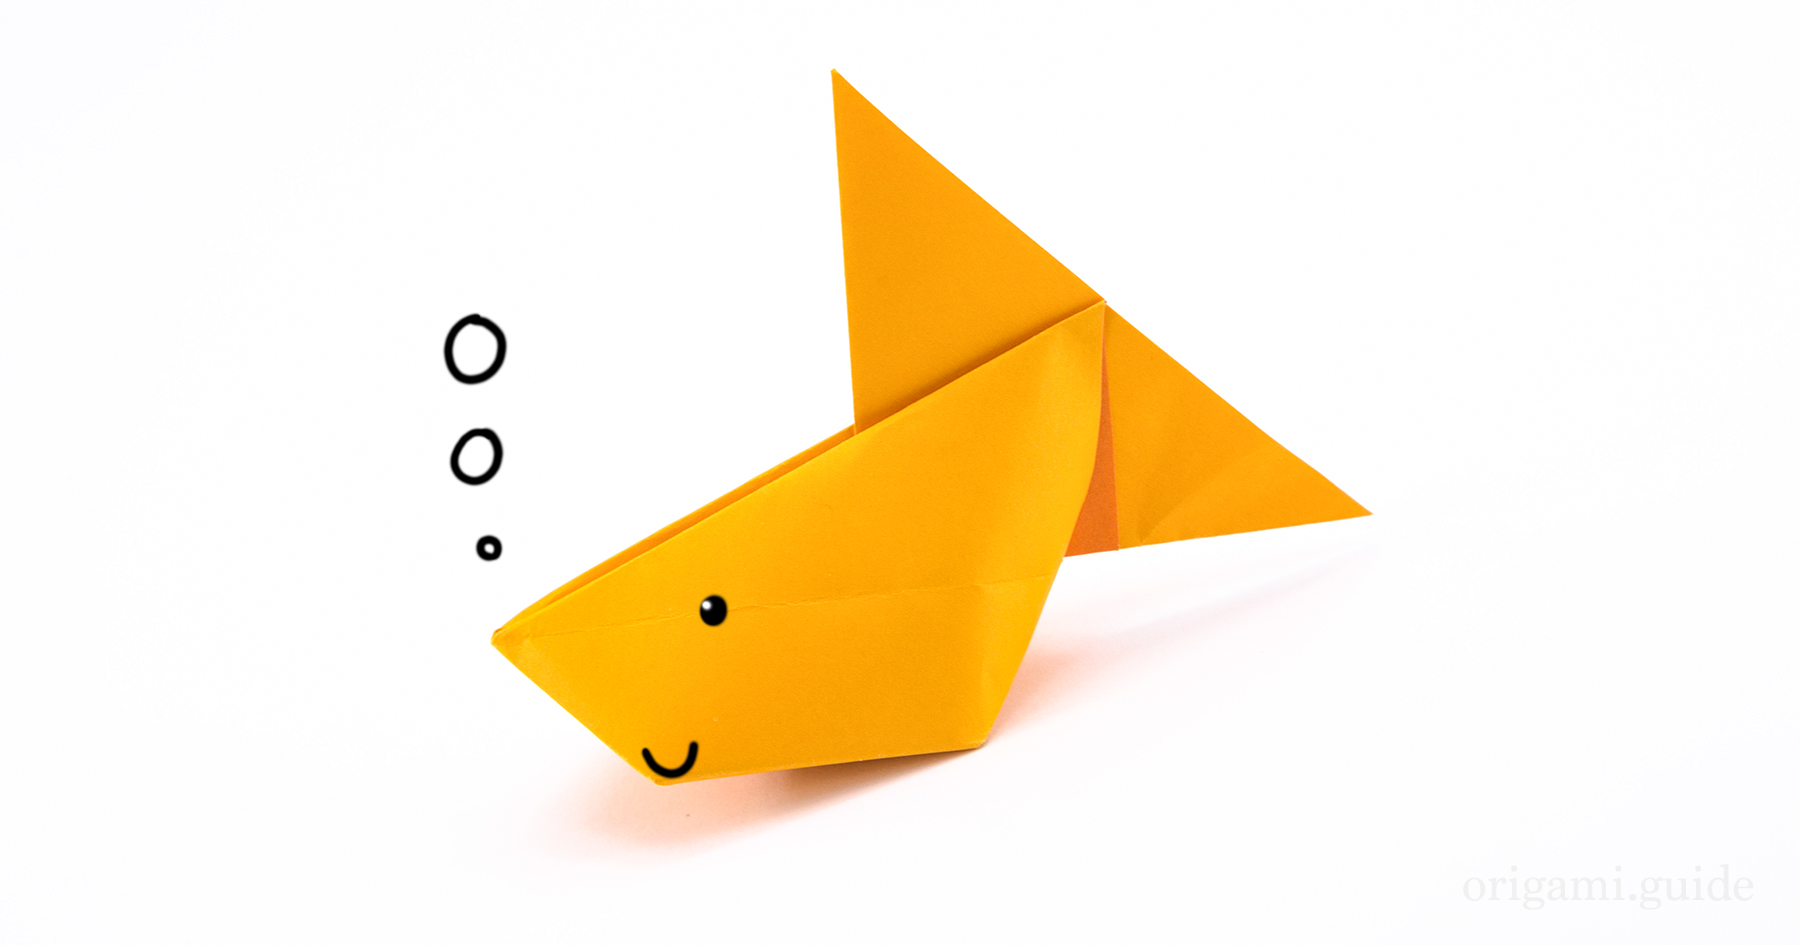 How To Make An Inflatable Origami Fish | Origami Guide ... - photo#30